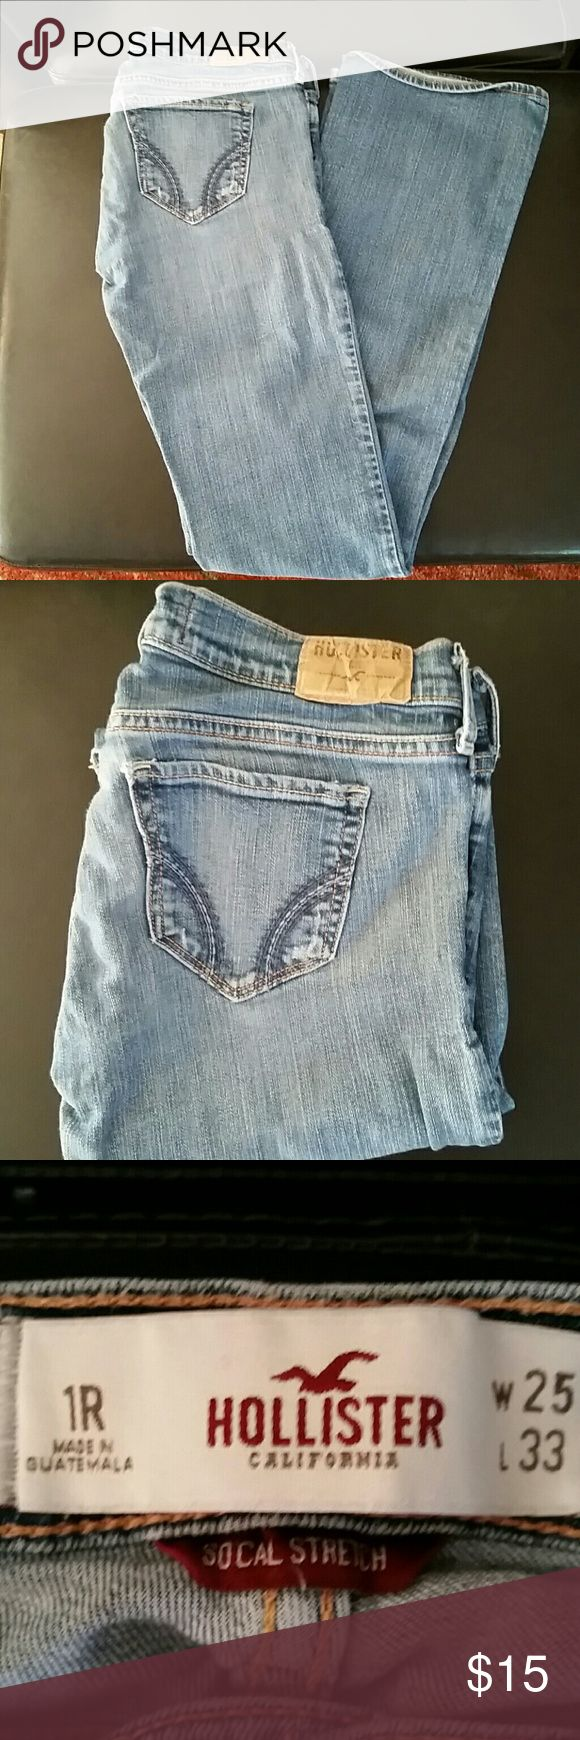 Hollister jeans Hollister jeans . They are a size 1 regular. 25 waist, 33 length. Hollister  Pants Boot Cut & Flare